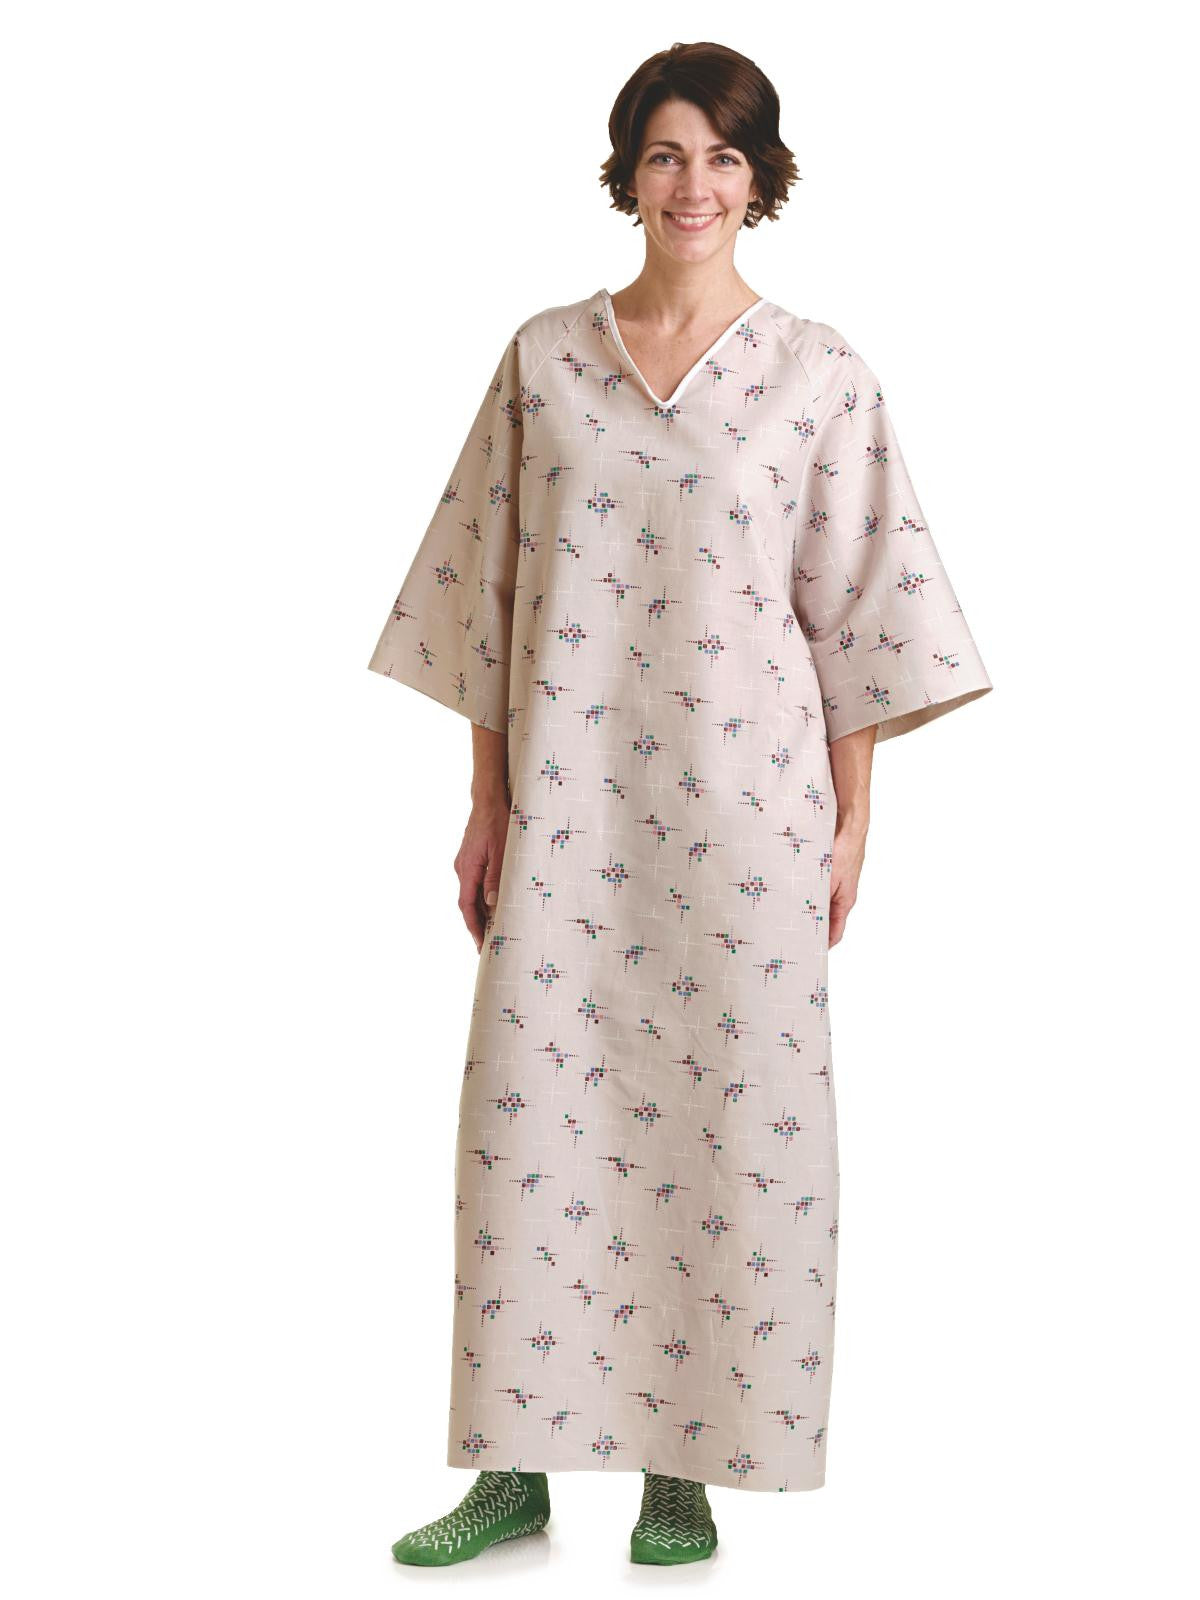 BHMedwear your number one source for hospital gowns & medical supplies